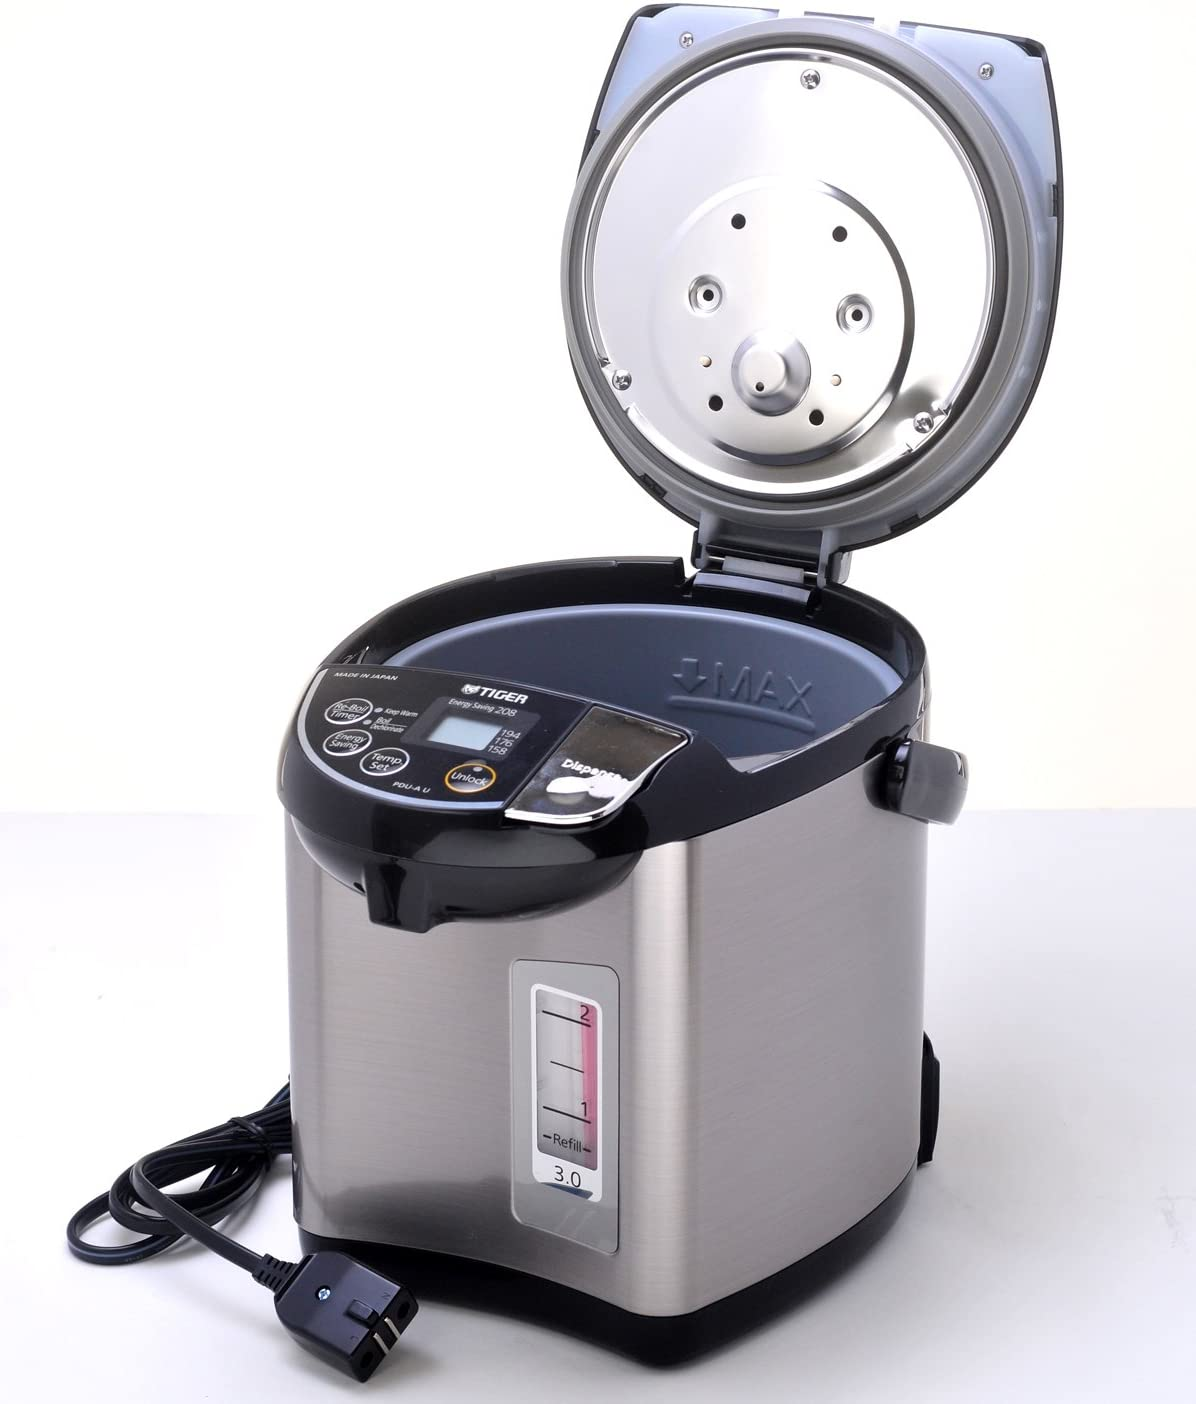 Stainless Black 3.0-Liter Tiger PDU-A30U-K Electric Water Boiler and Warmer